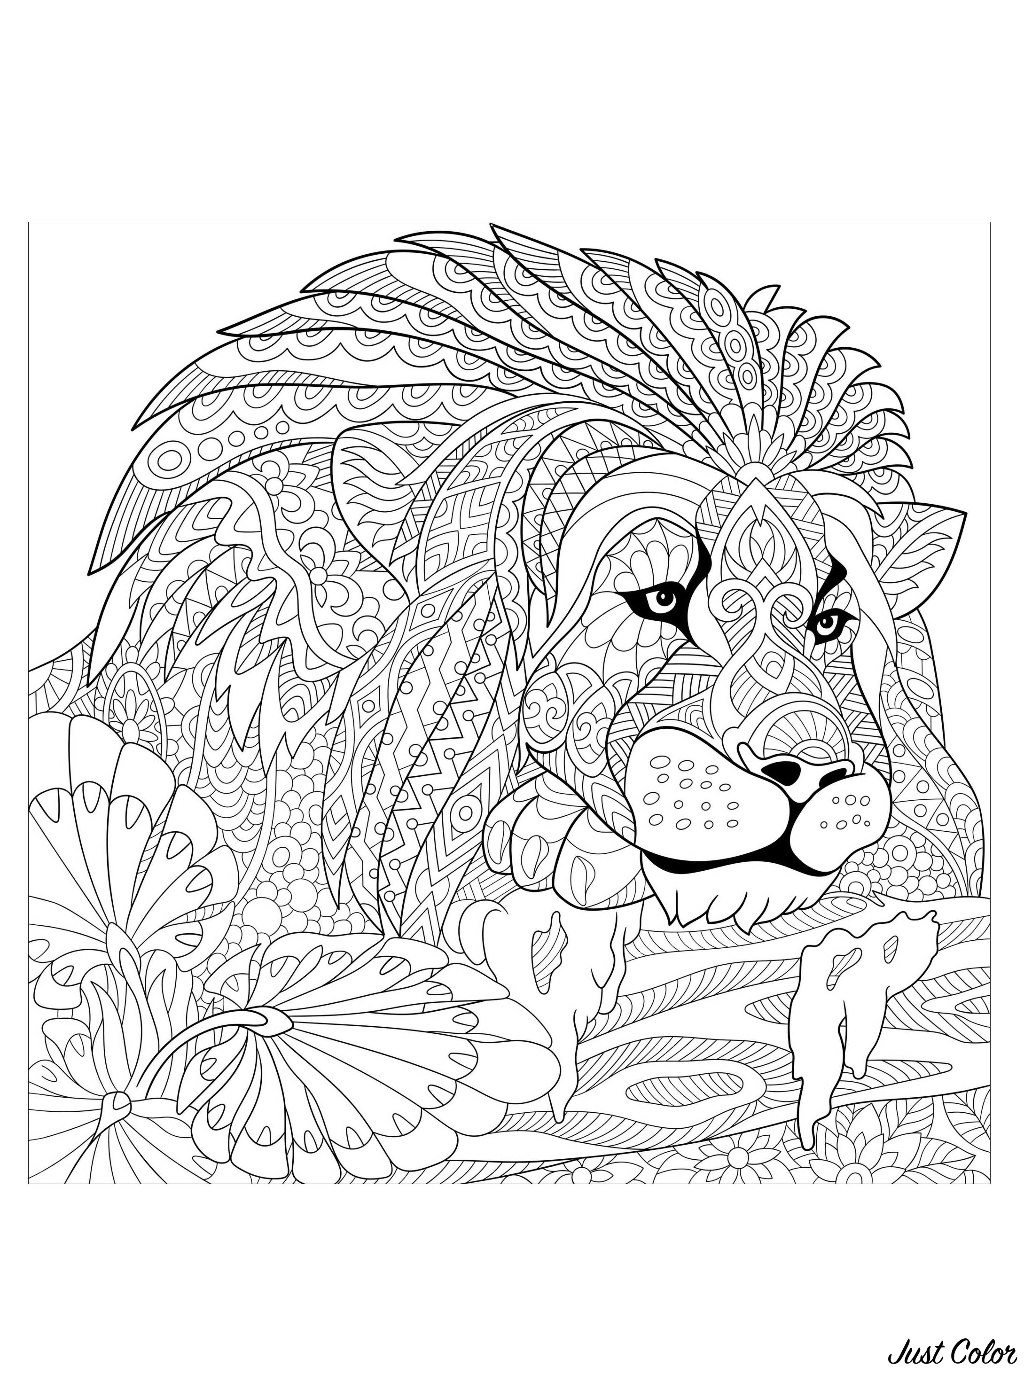 Lion King With Patterns